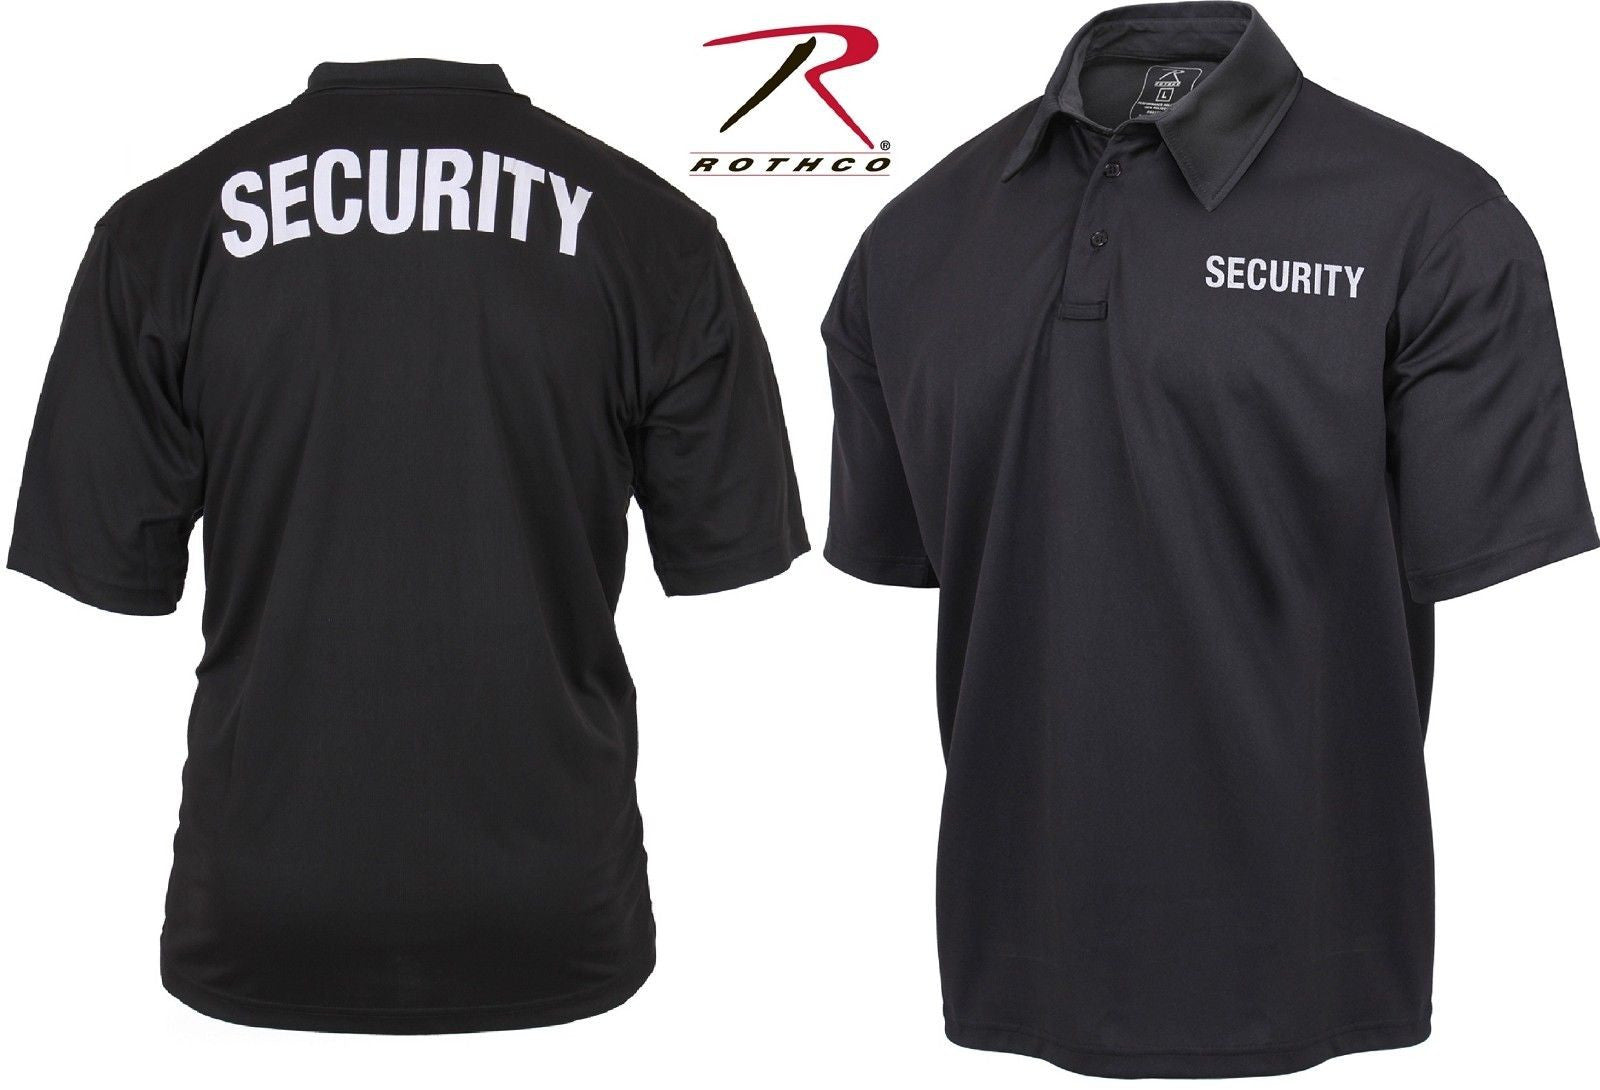 Mens Black Double Sided Security Lightweight Moisture Wicking Polo